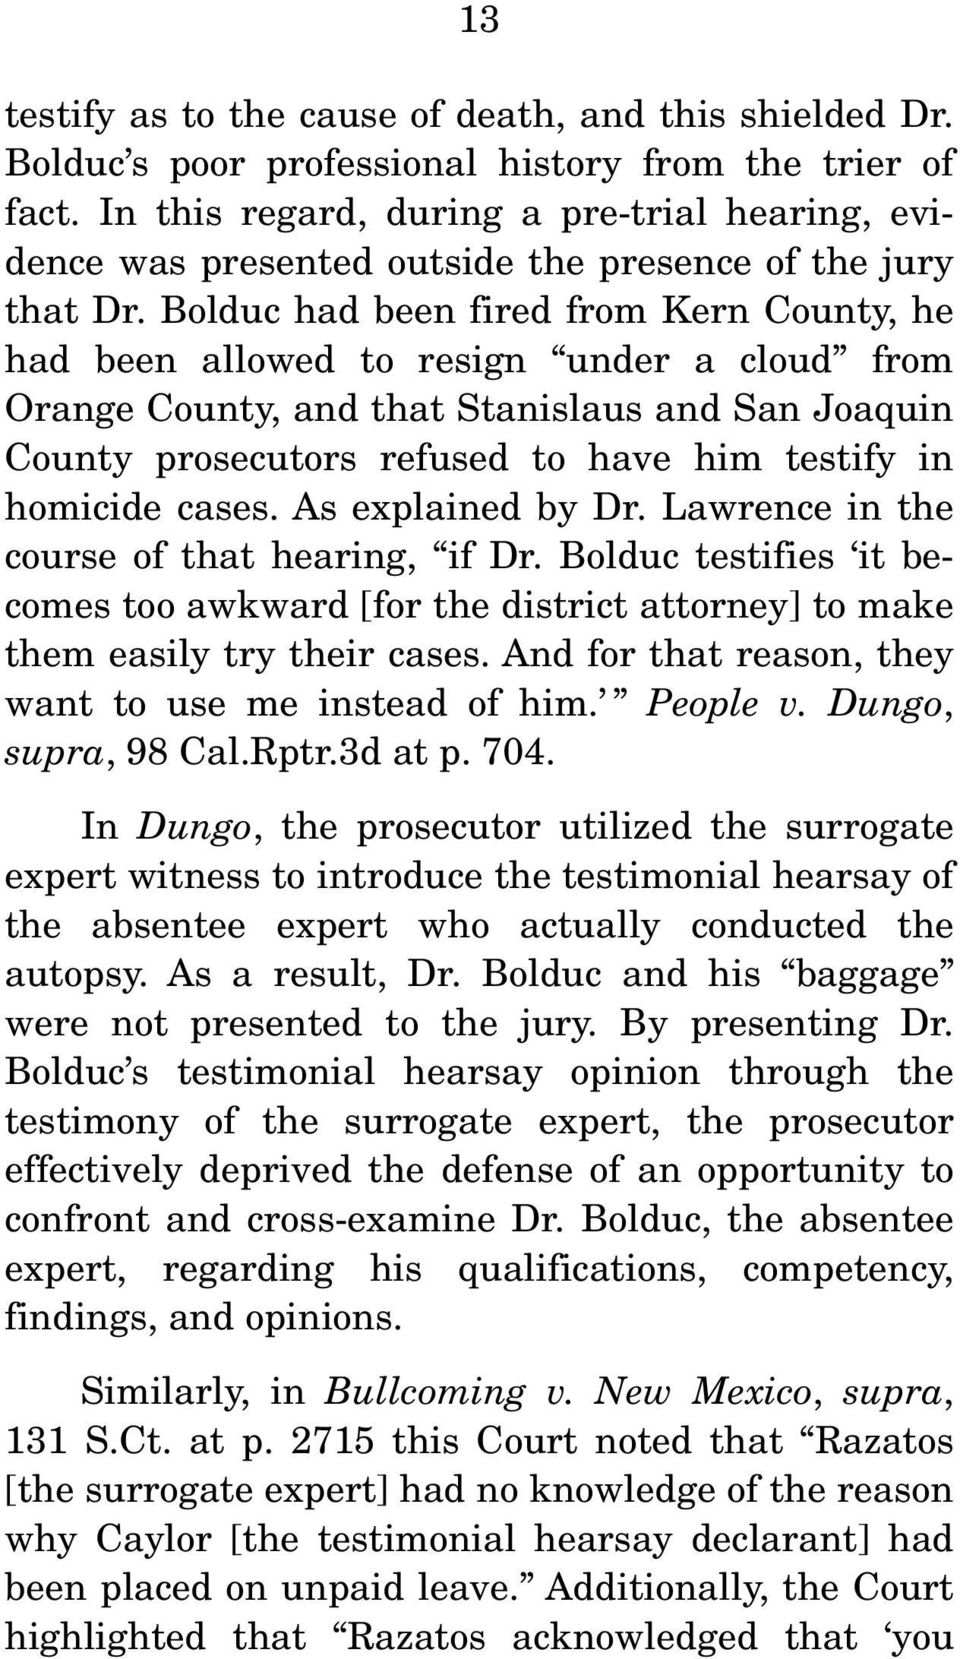 Bolduc had been fired from Kern County, he had been allowed to resign under a cloud from Orange County, and that Stanislaus and San Joaquin County prosecutors refused to have him testify in homicide